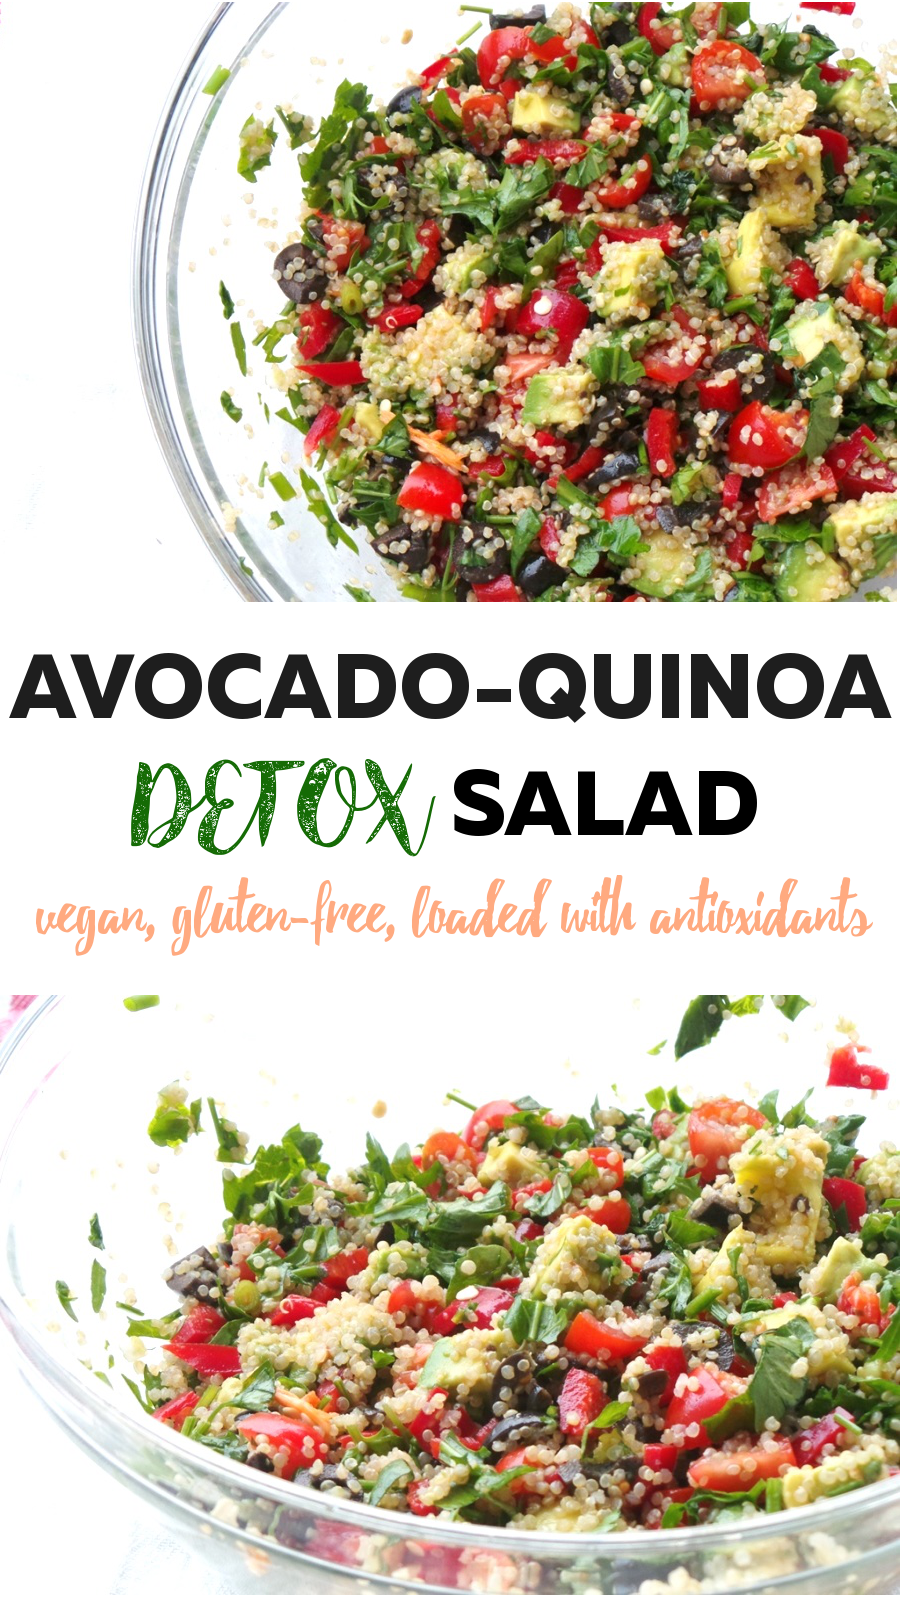 Incredible Vegan Quinoa Salad Glow From The Inside Out